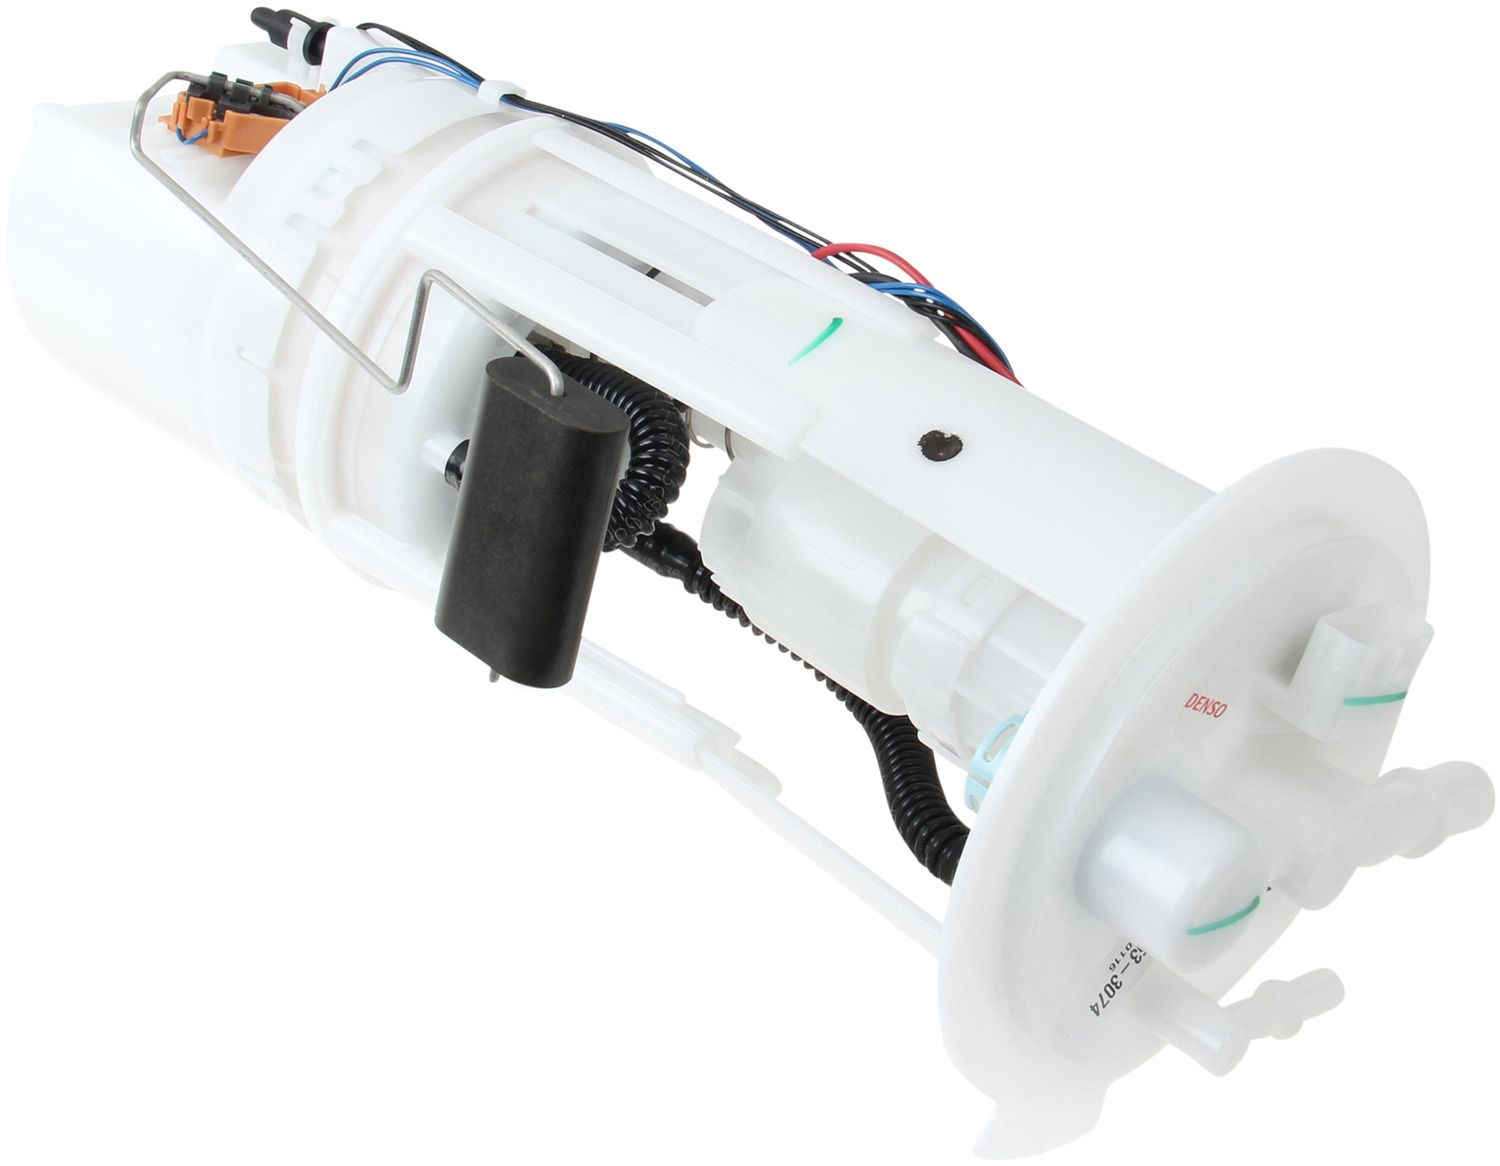 2005 Nissan Pathfinder Fuel Pump Module Assembly 6 Cyl 4.0L (Denso  953-3074) OE Replacement Module Assembly .